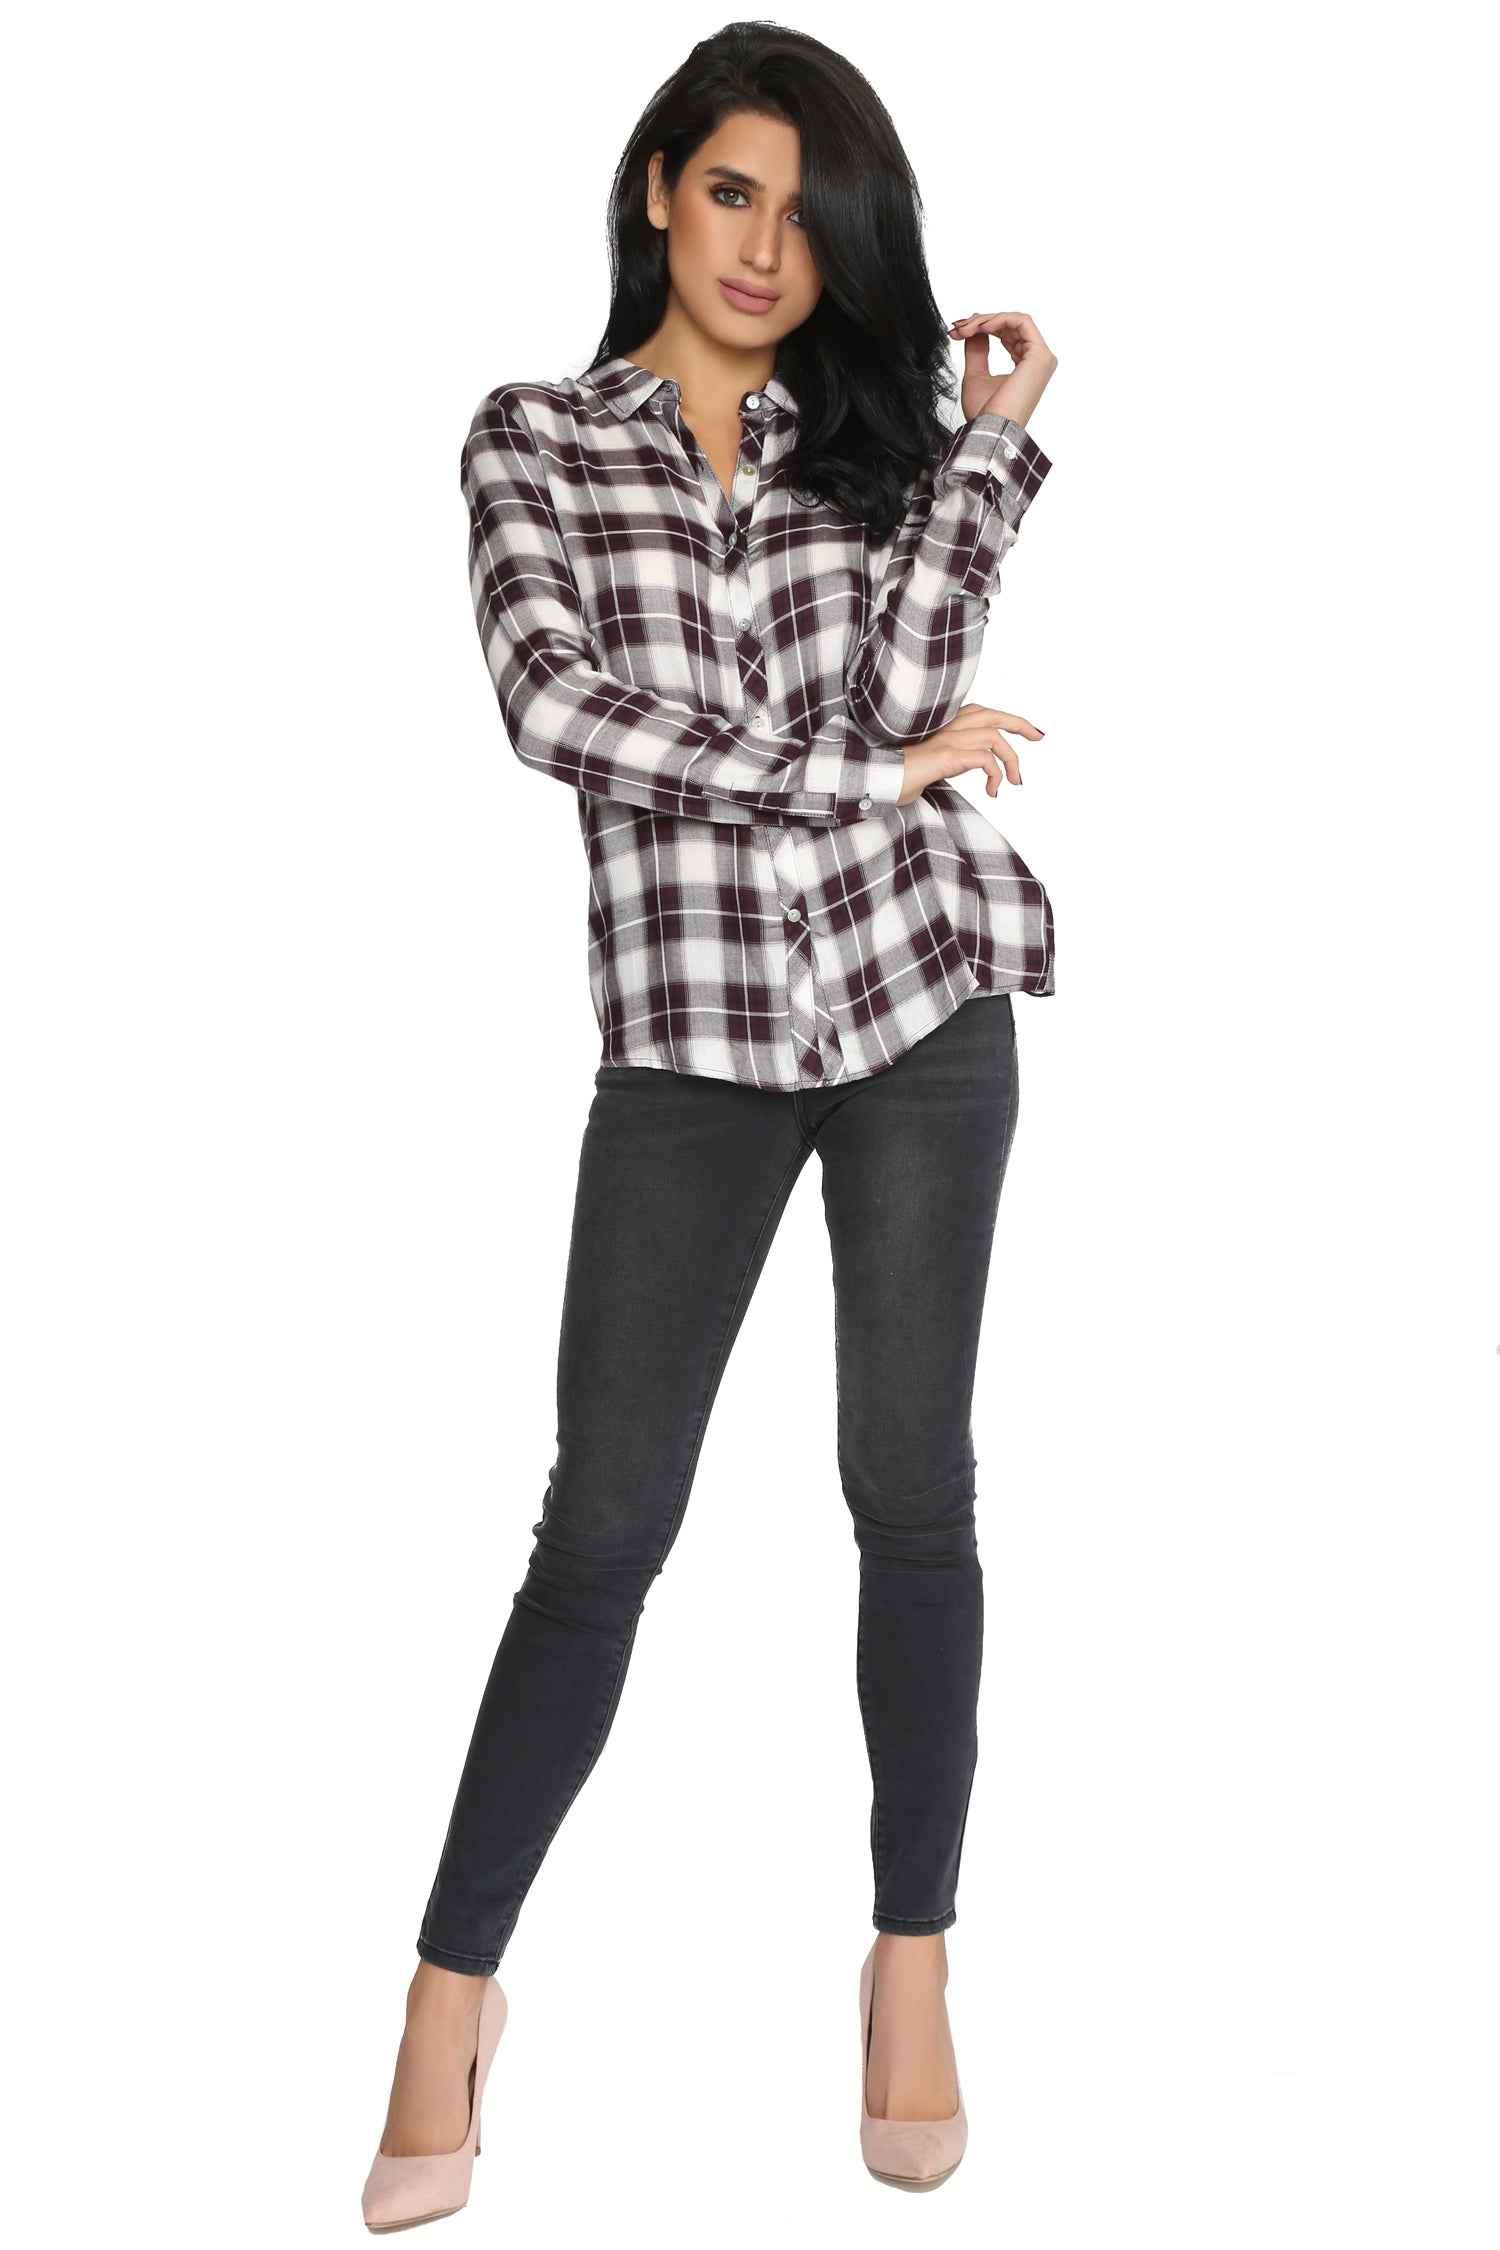 TERESA FLANNEL SHIRT